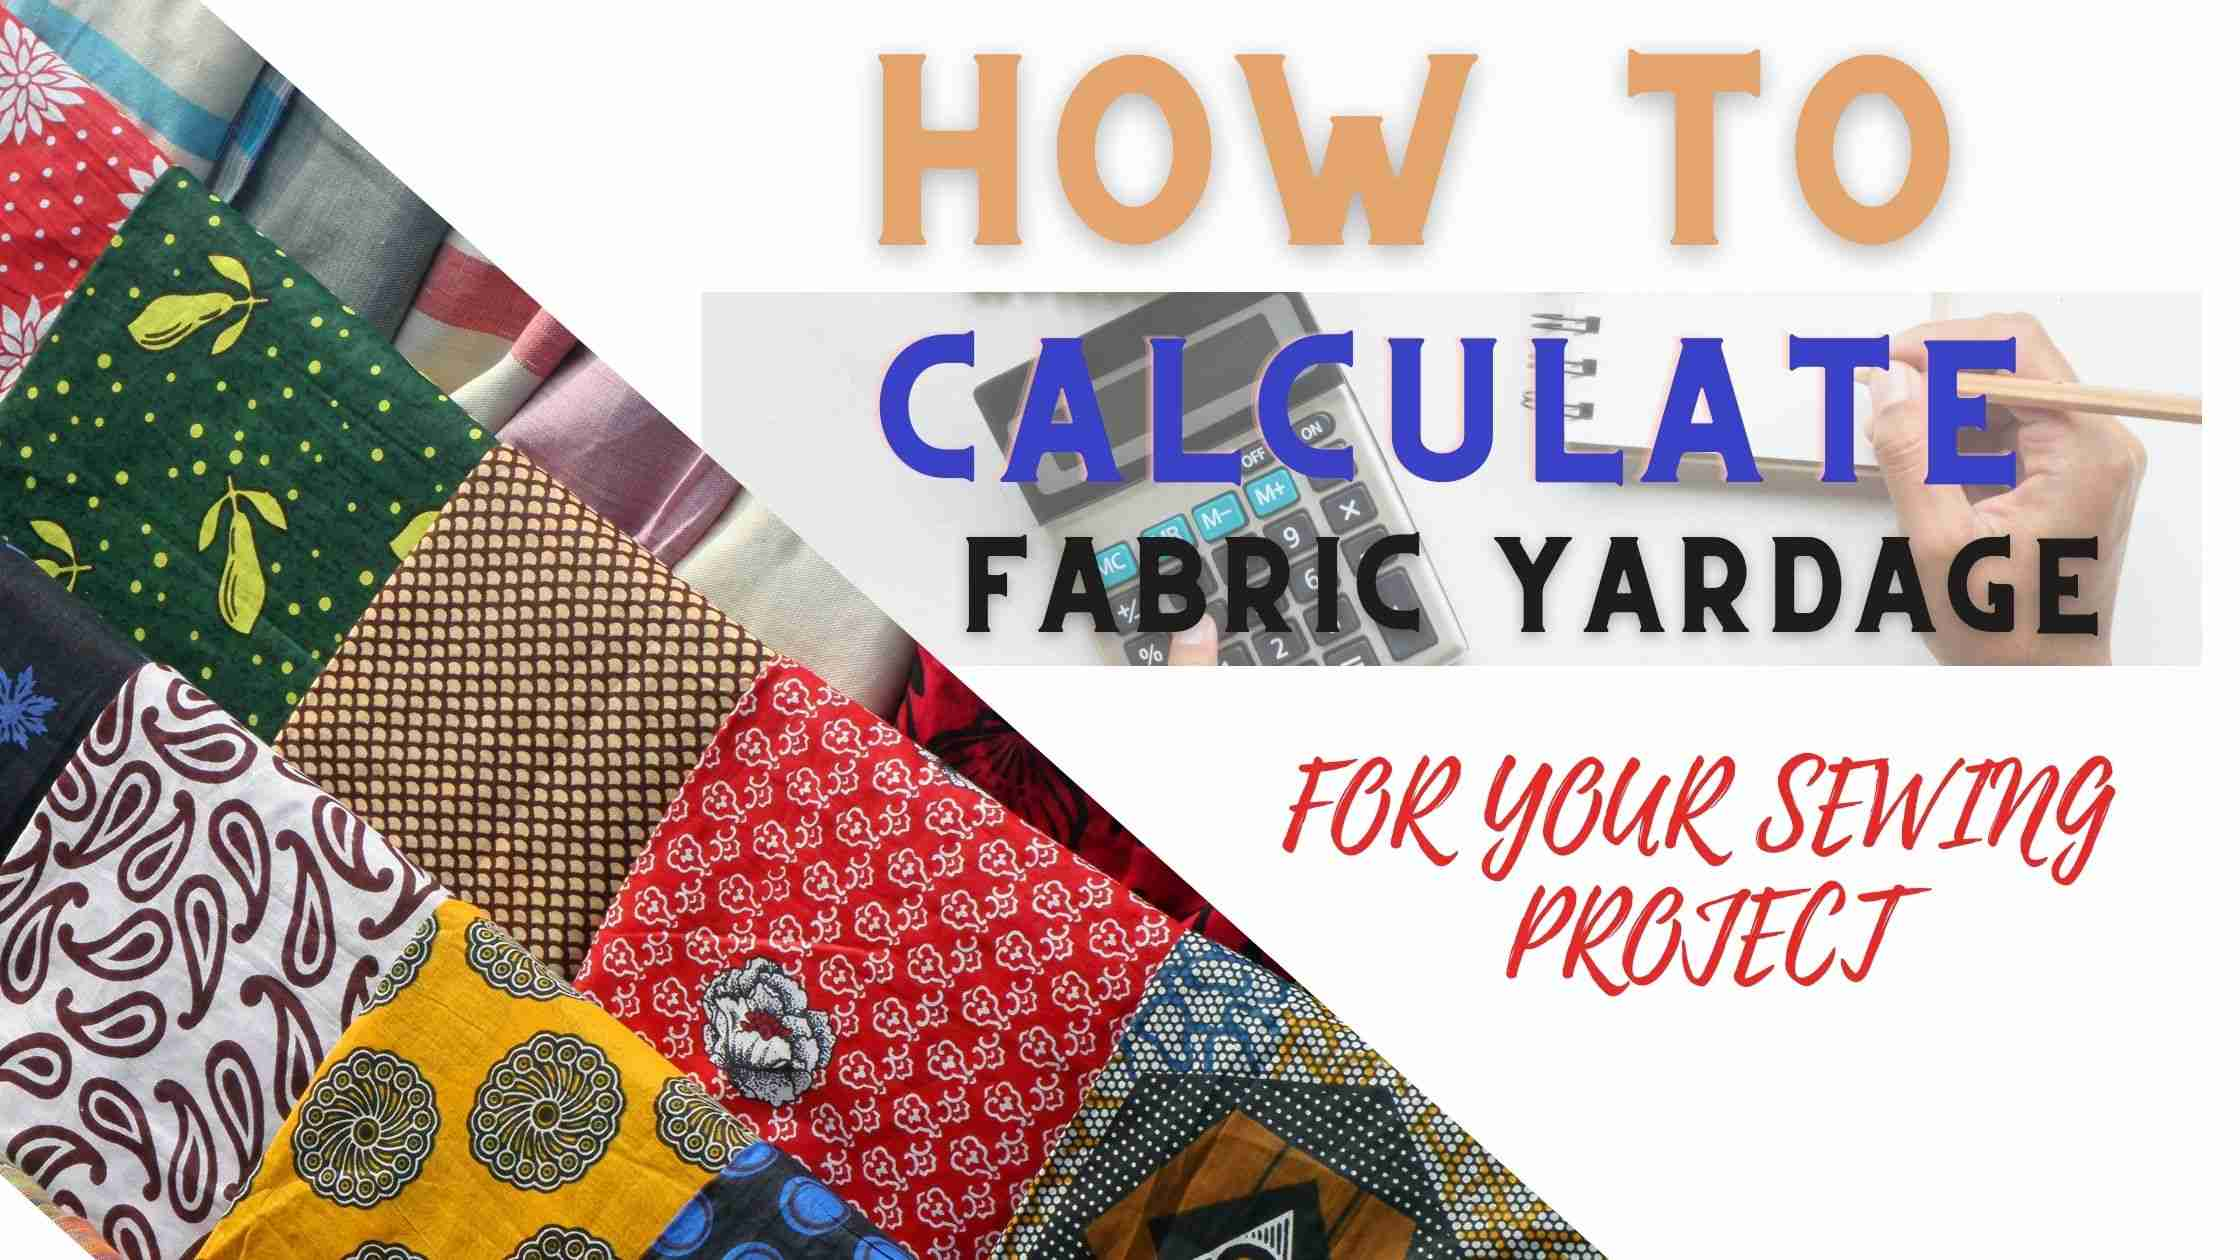 You are currently viewing HOW TO CALCULATE FABRIC YARDAGE FOR SEWING.(FREE FABRIC CALCULATOR)